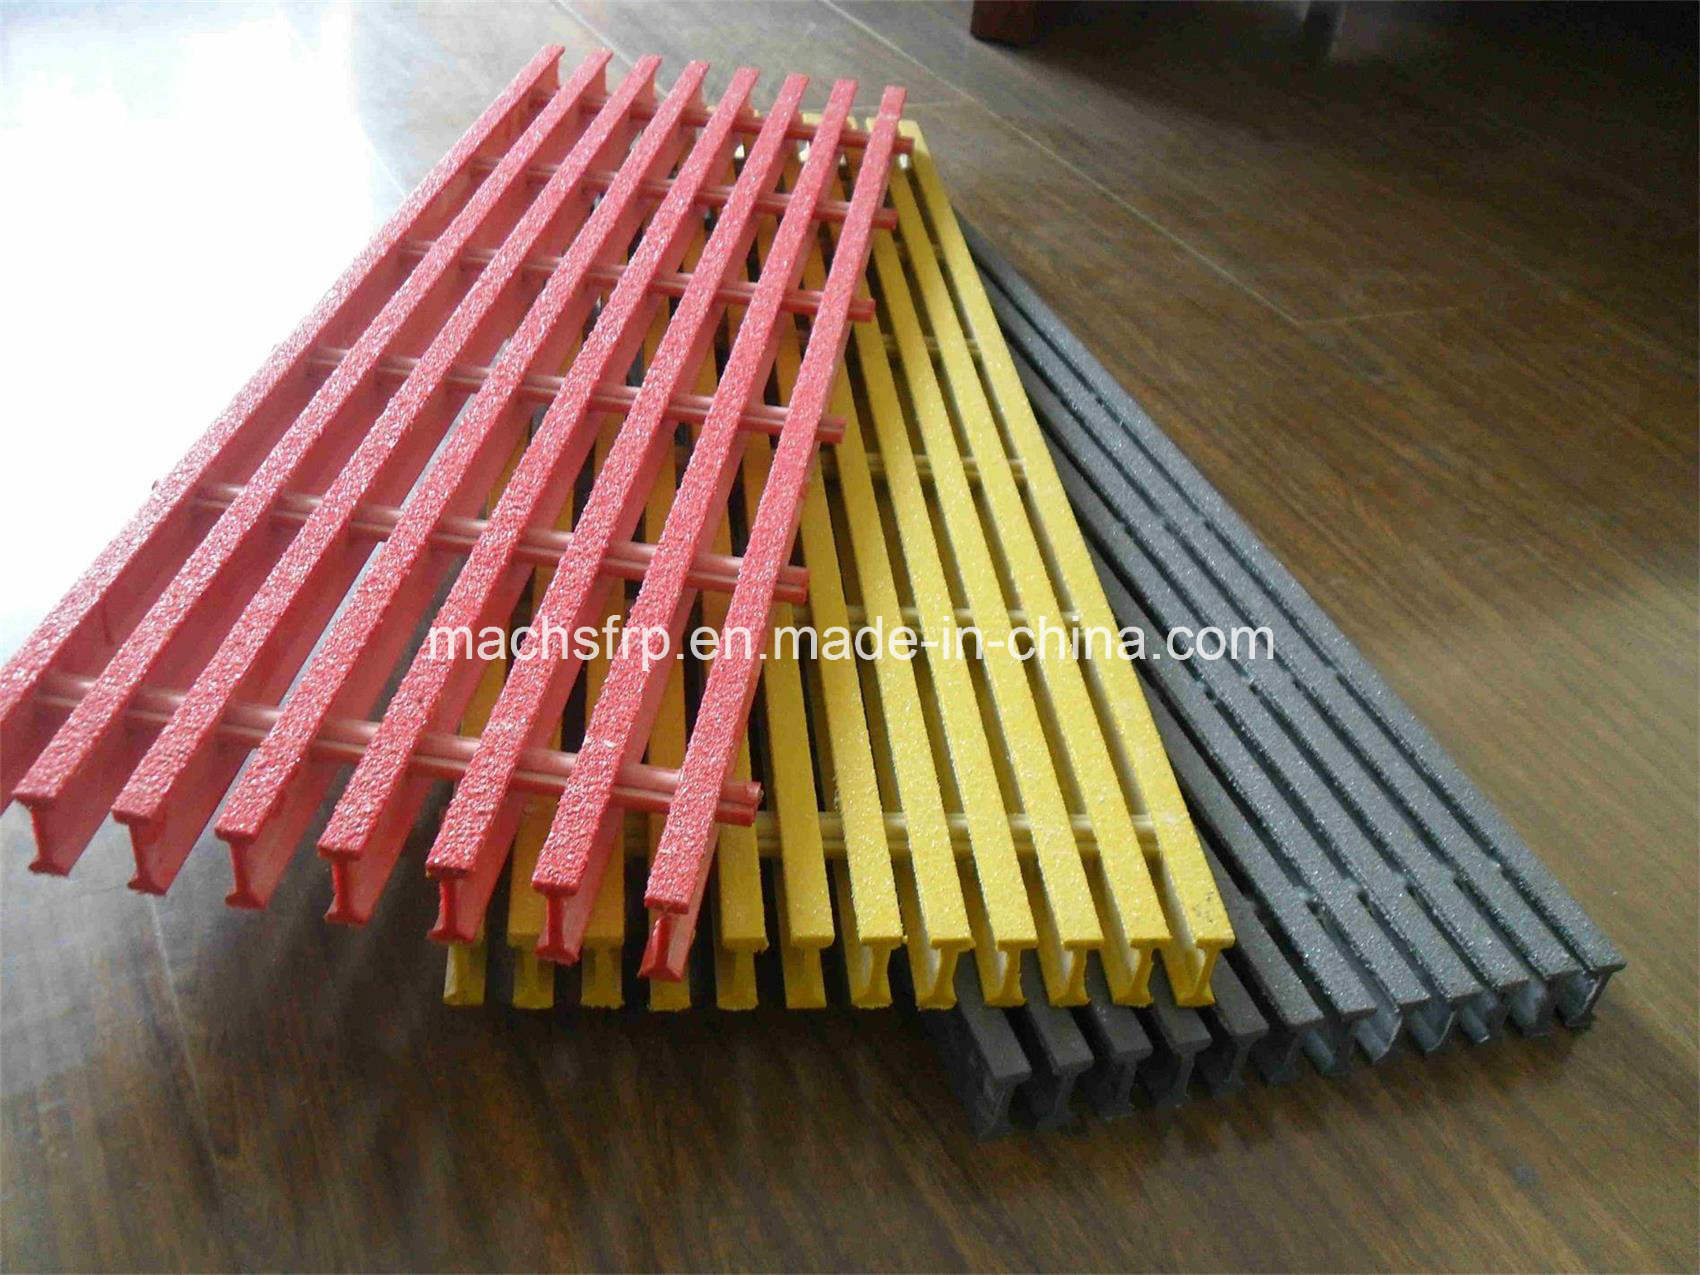 FRP Grating and GRP Pultruded Grating and FRP Pultrusion&Pultrded Profile Steel Bar Grating